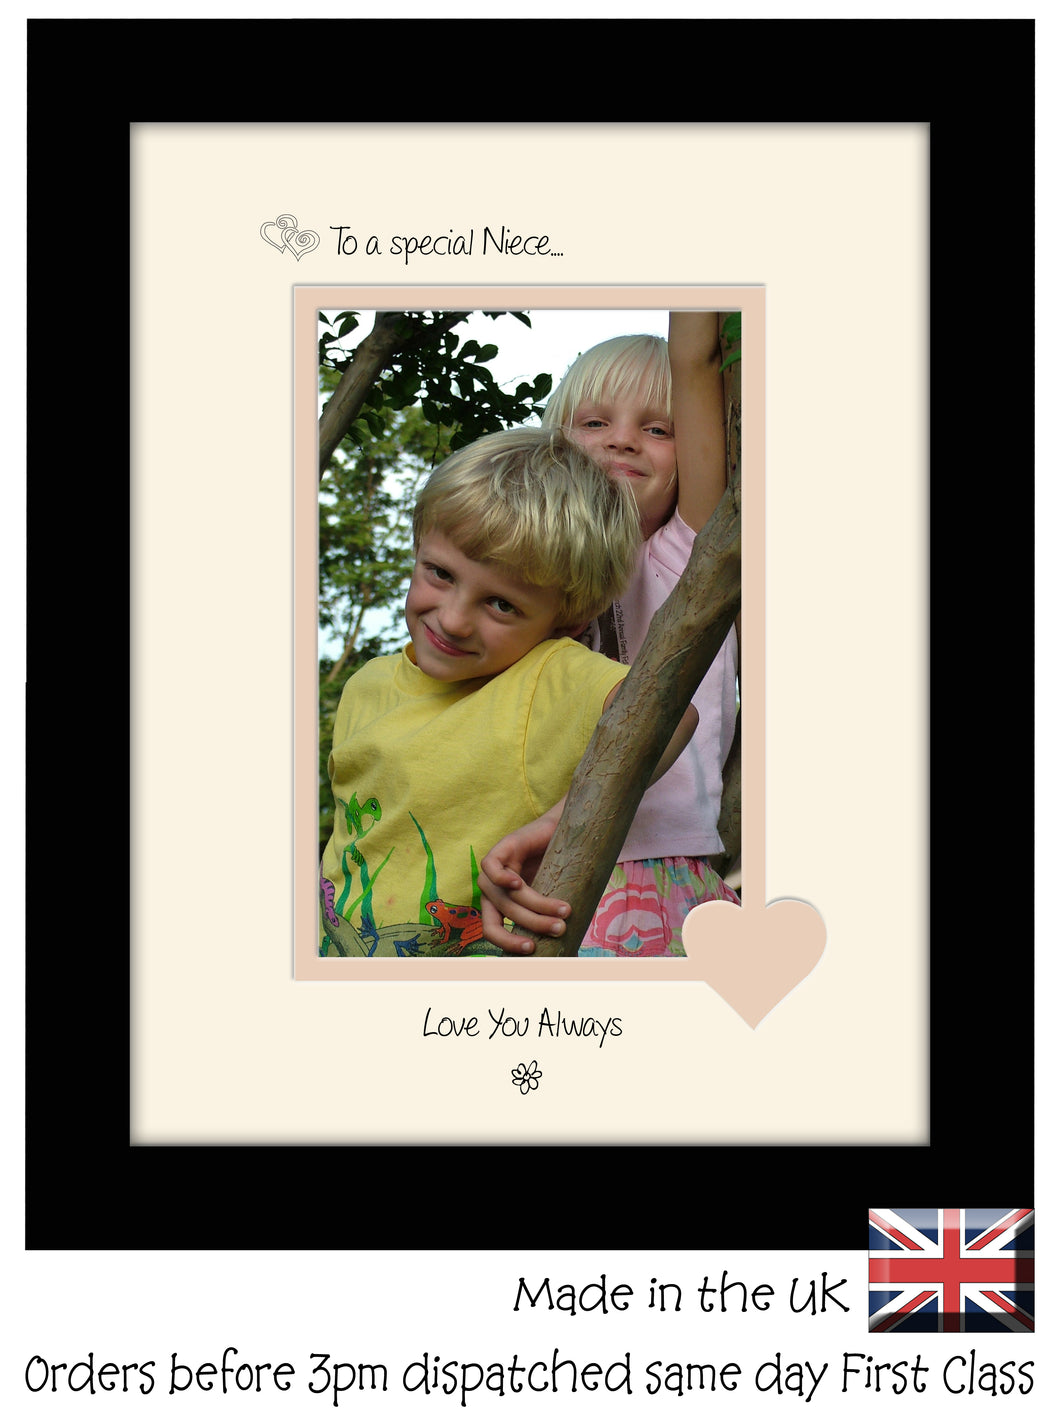 Niece Photo Frame - To a Special Niece ... Love you Always Portrait photo frame 6